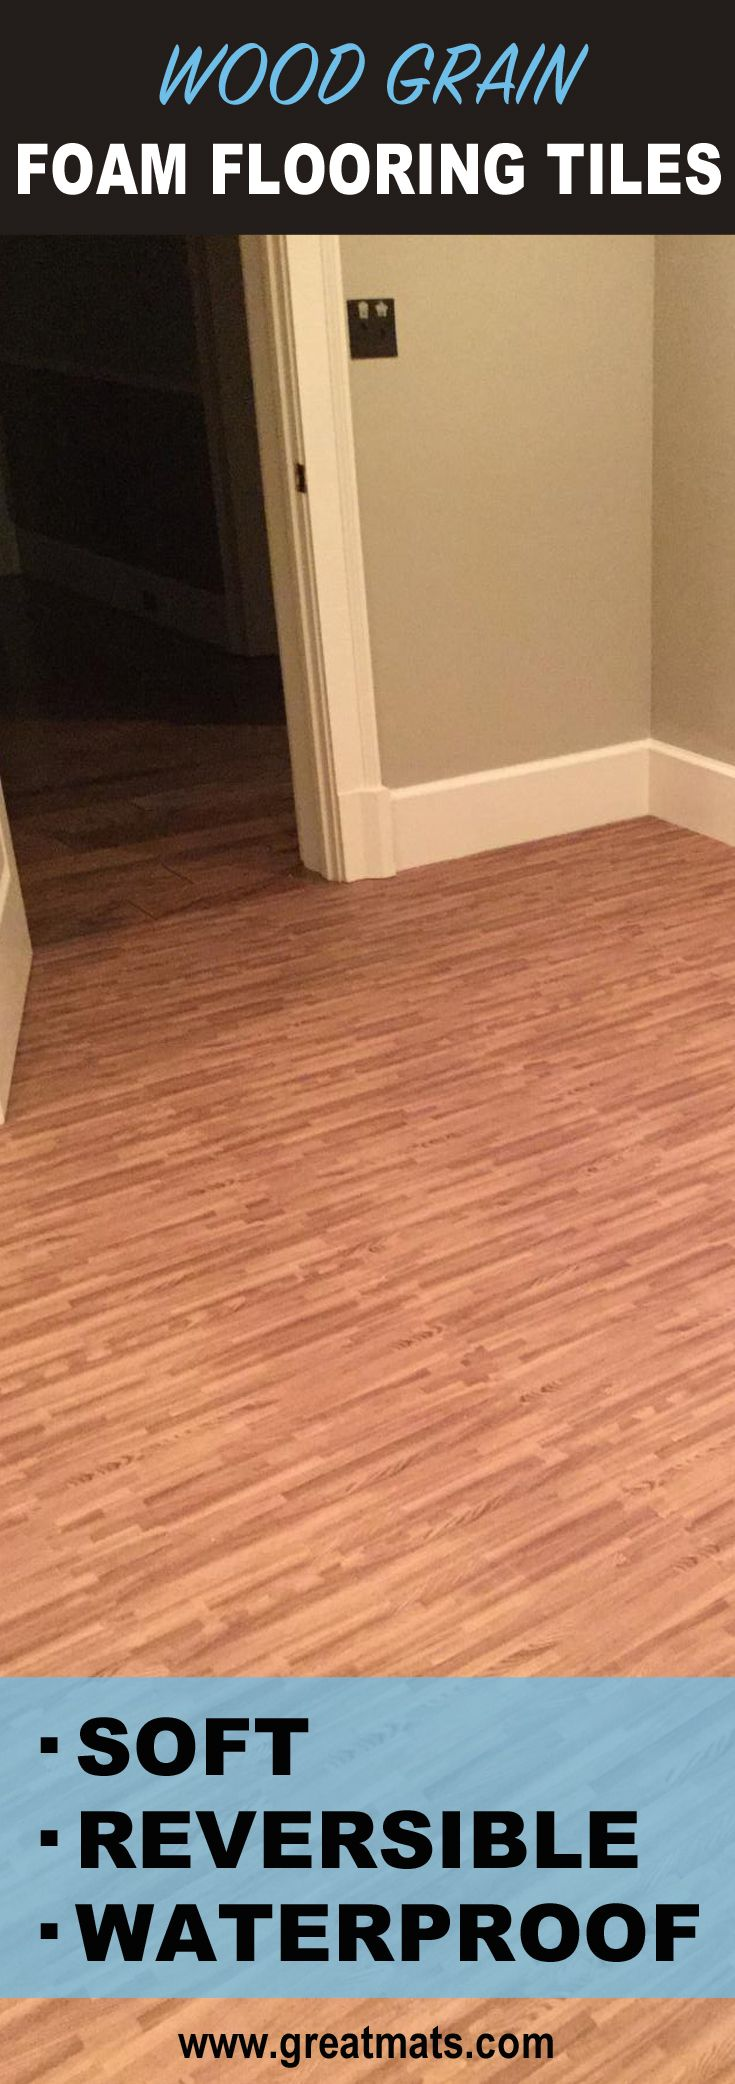 Soft wood grain flooring tiles for basements bedrooms playrooms interlocking floor tiles with a wood grain foam tile look these interlocking foam tiles offer a durable and soft flooring surface in wood tile design dailygadgetfo Gallery